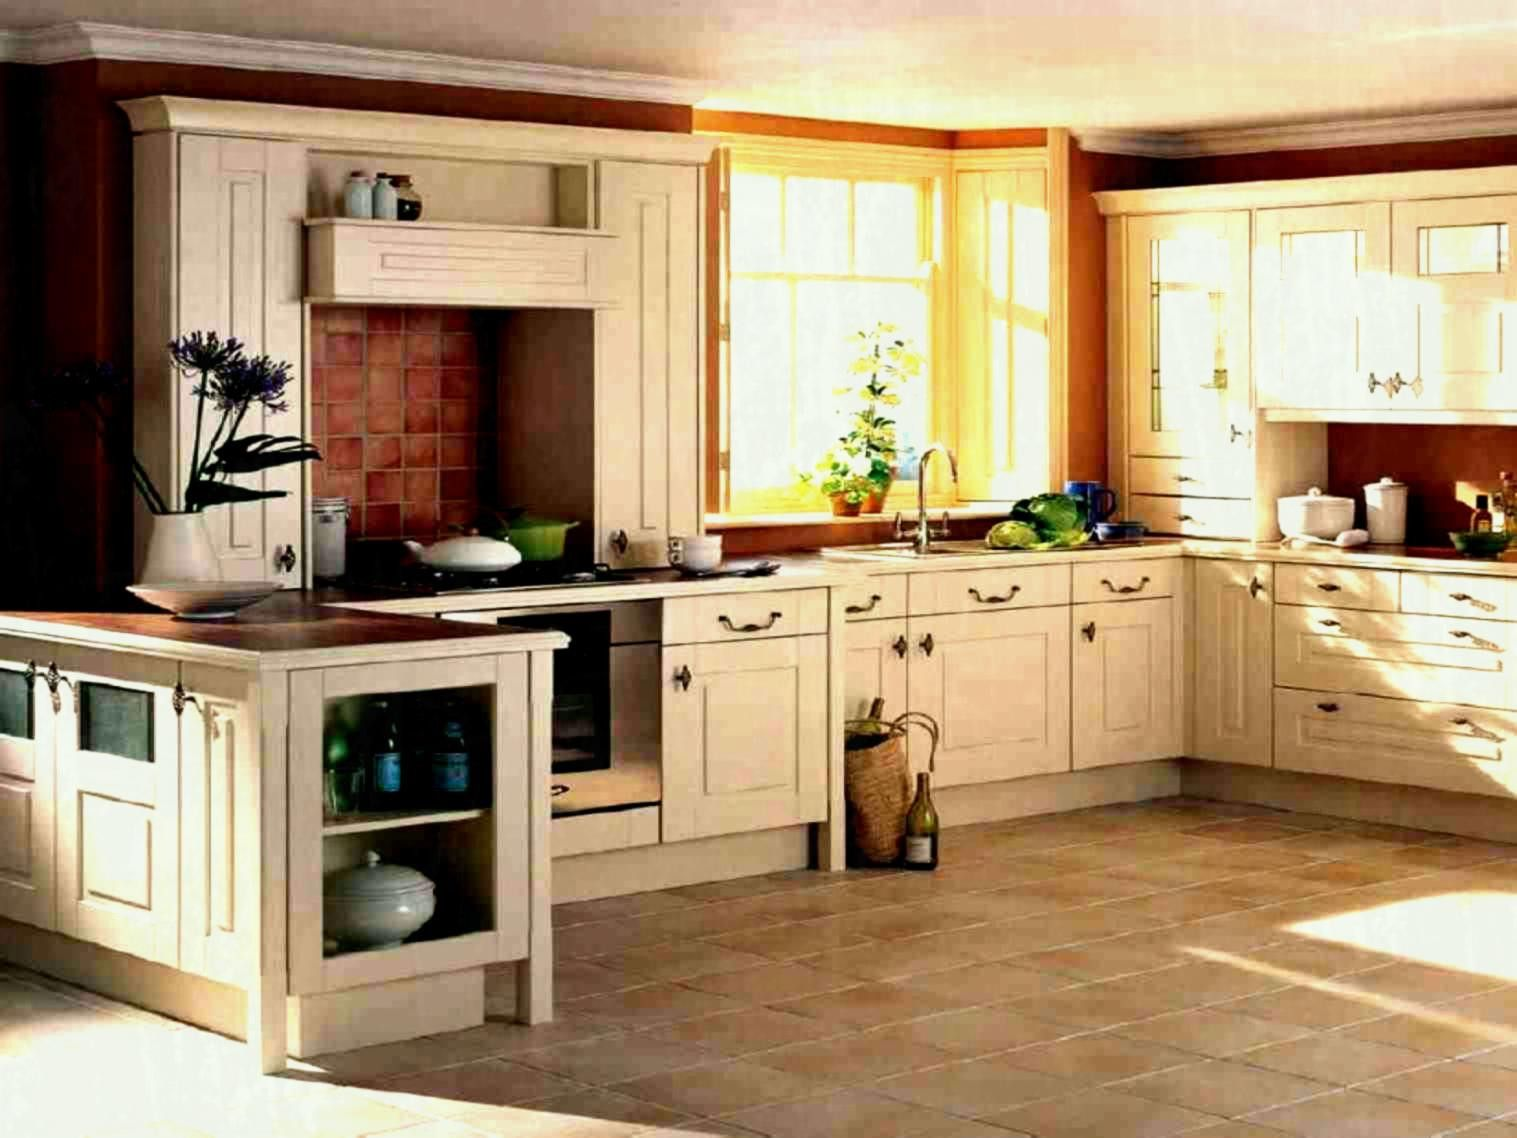 70 Country Kitchen Cabinet Doors Kitchen Floor Vinyl Ideas Check